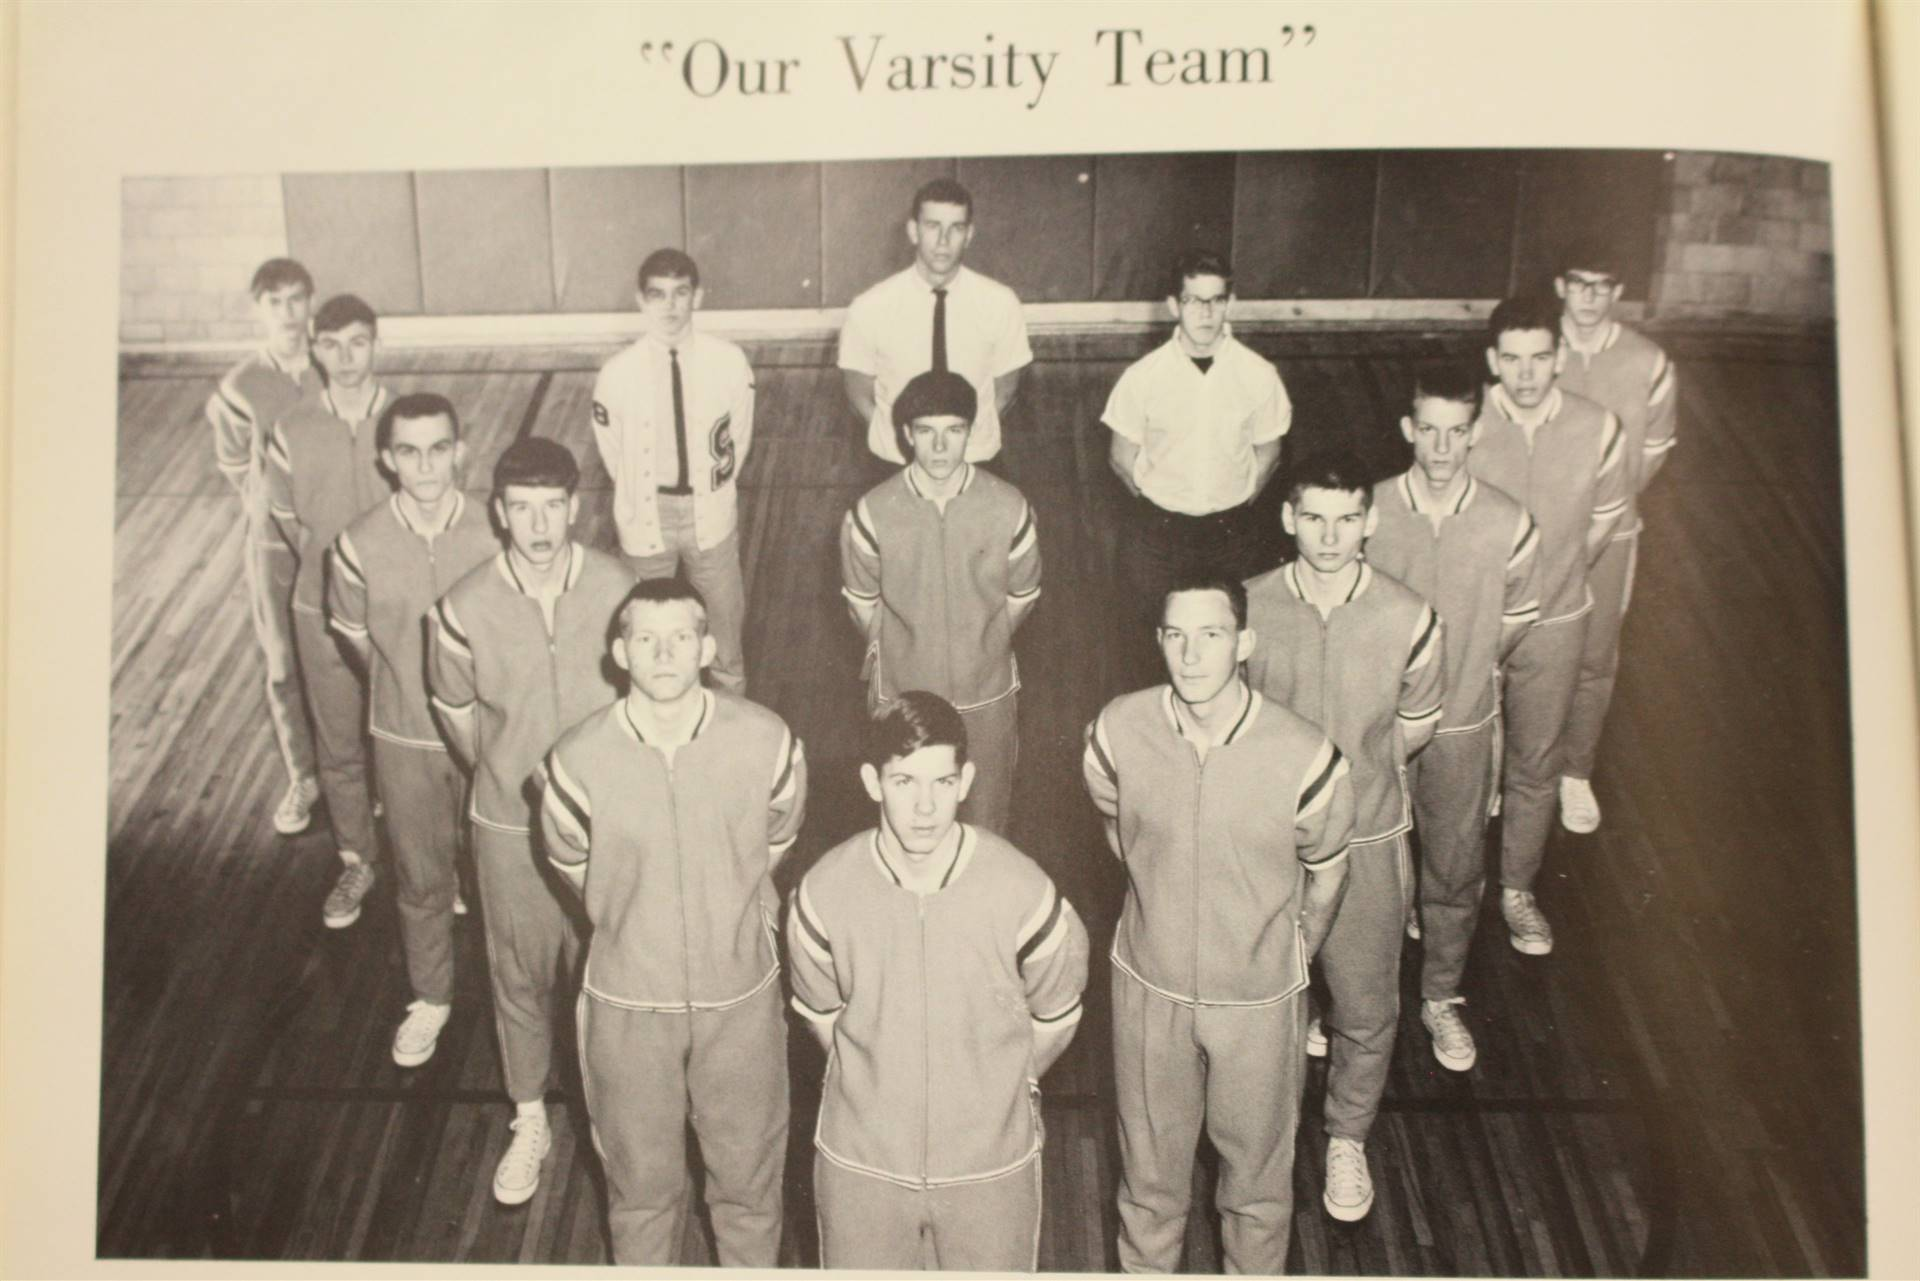 1967 Varsity Basketball Team